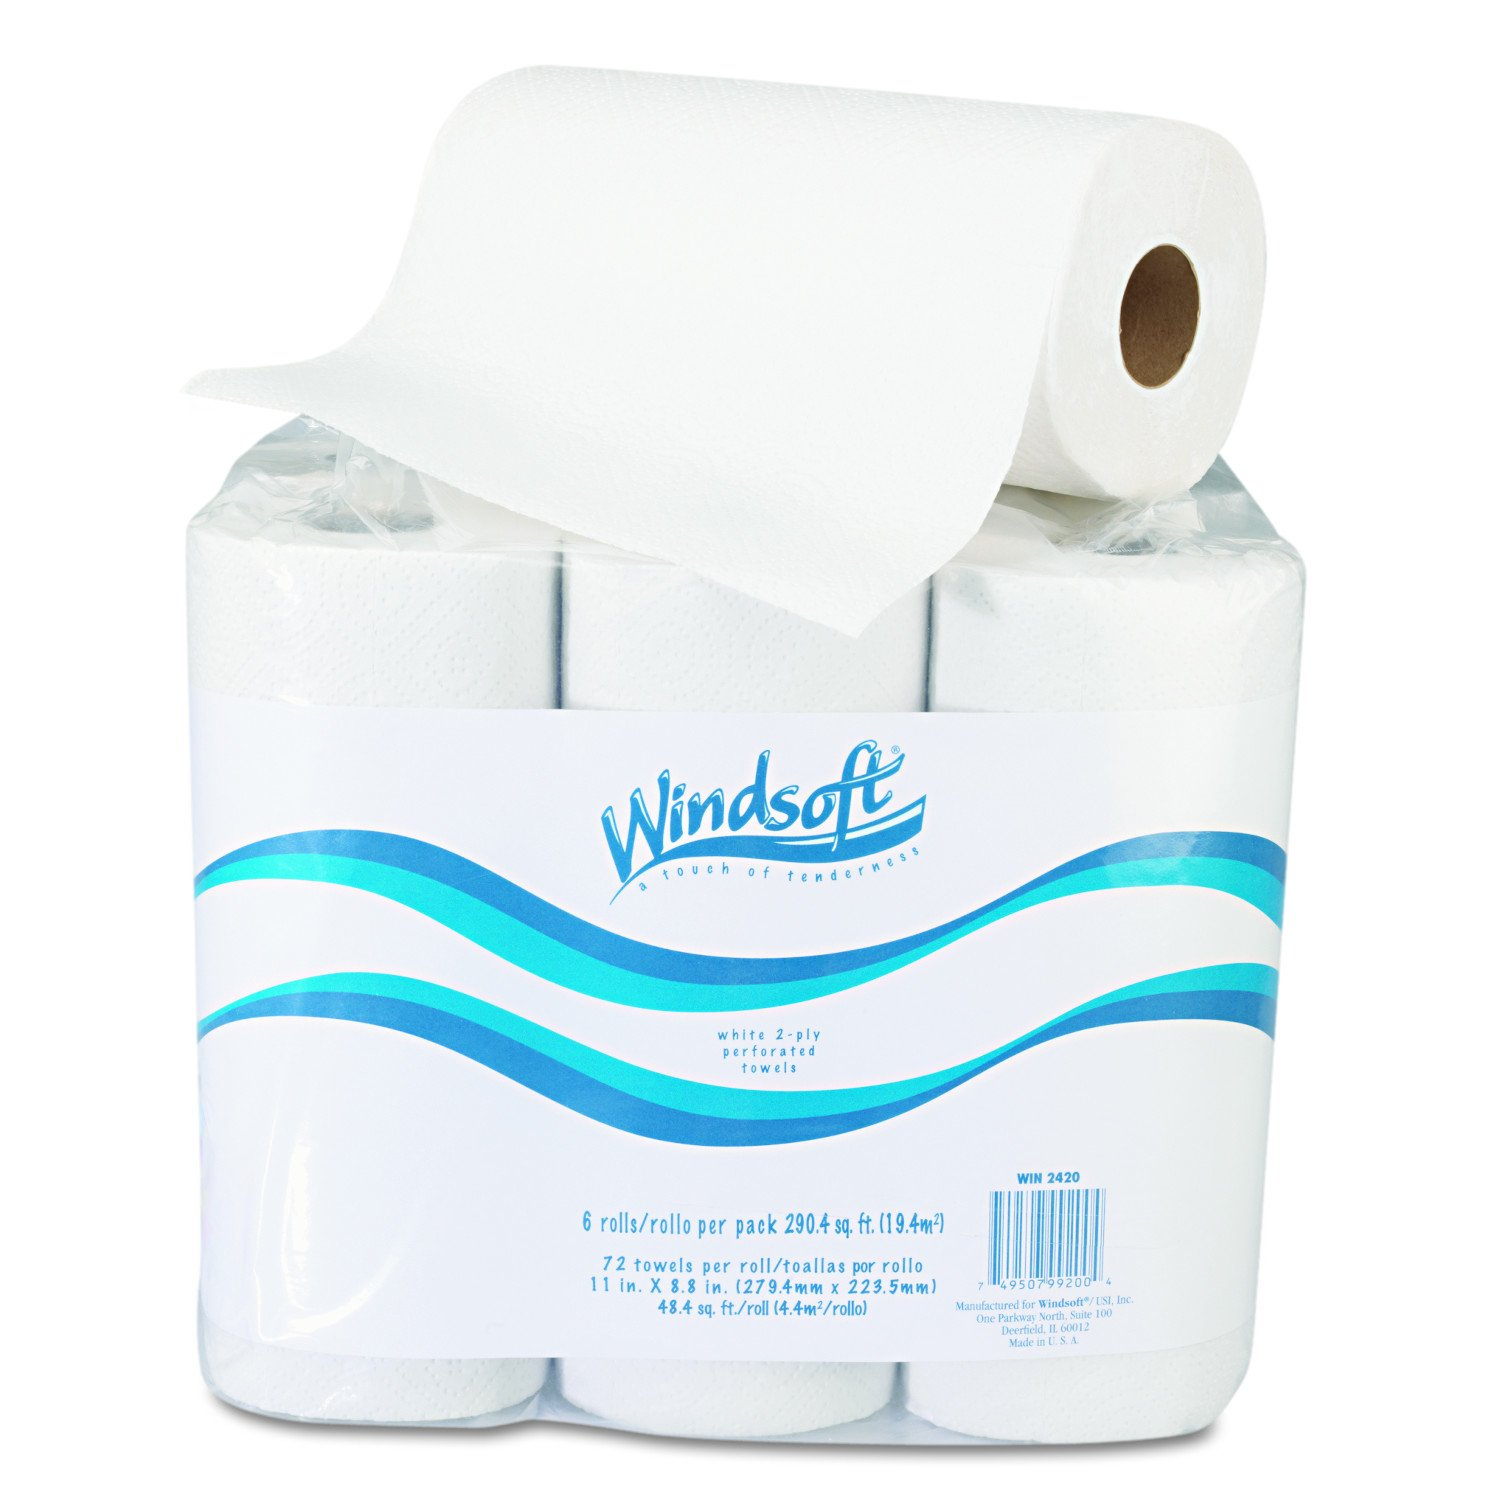 Windsoft 2420 Paper Towel Roll, 11